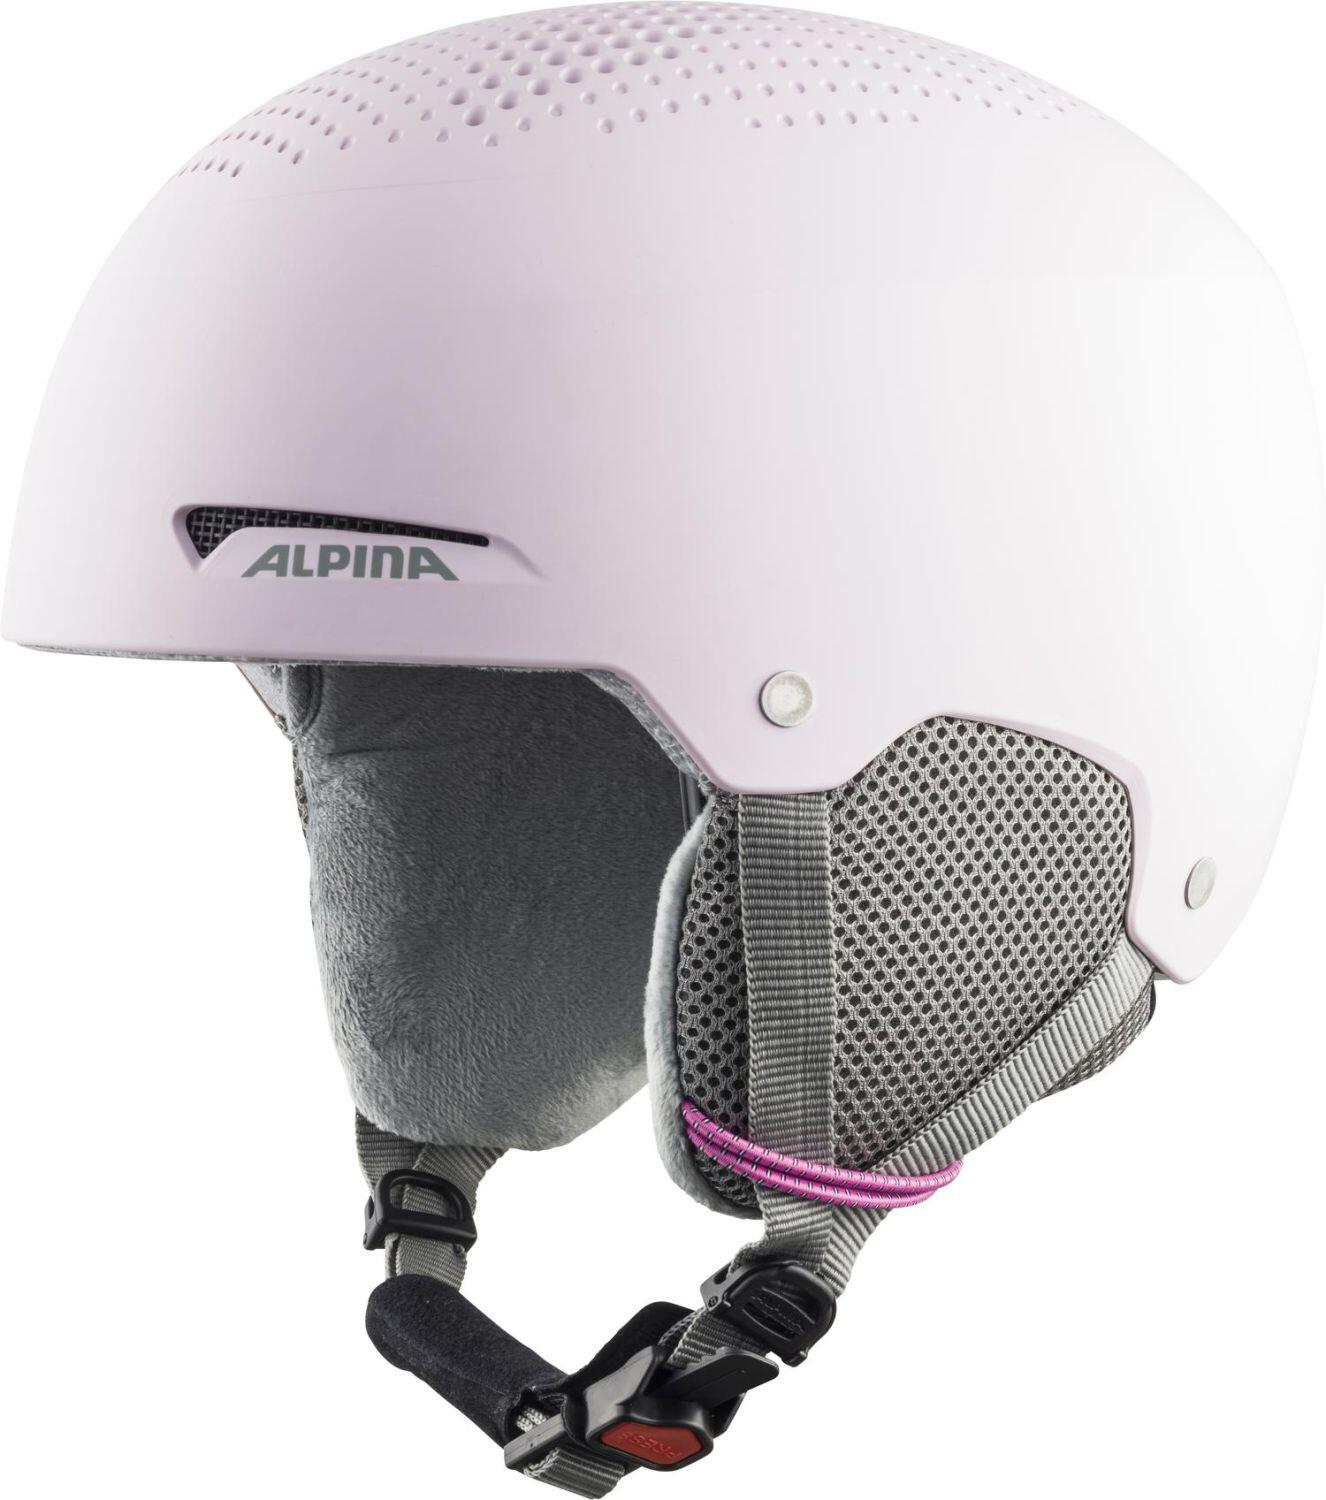 Fürski - Alpina Zupo Kinder Skihelm (Größe 48 52 cm, 60 light rose matt) - Onlineshop